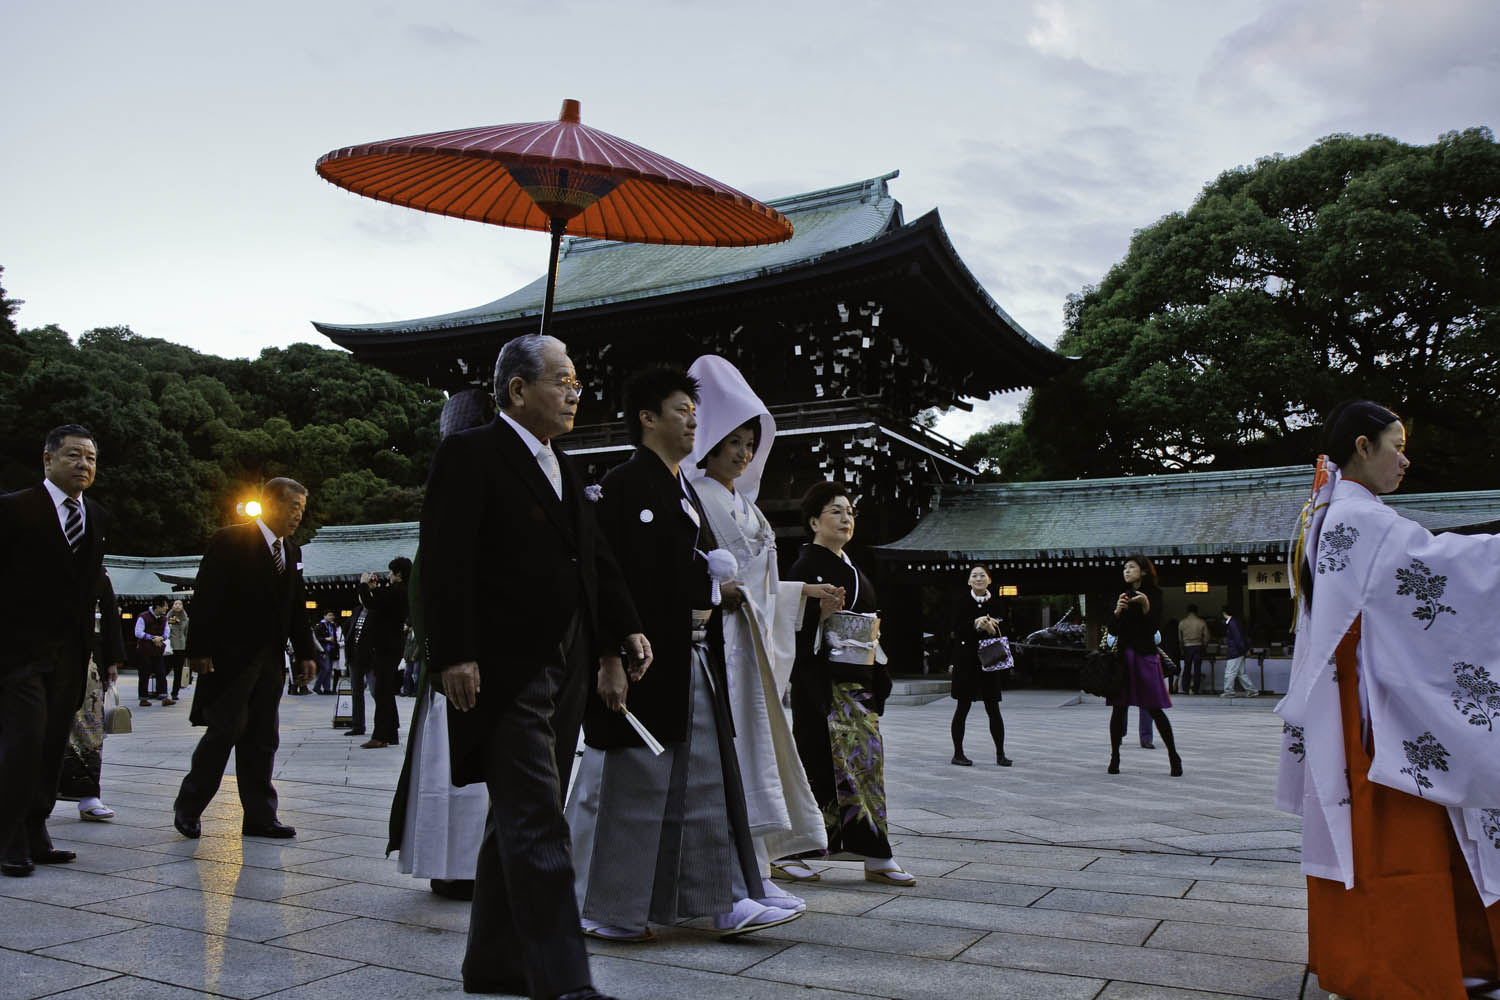 Bride and Groom Walk Through Meji Shrine